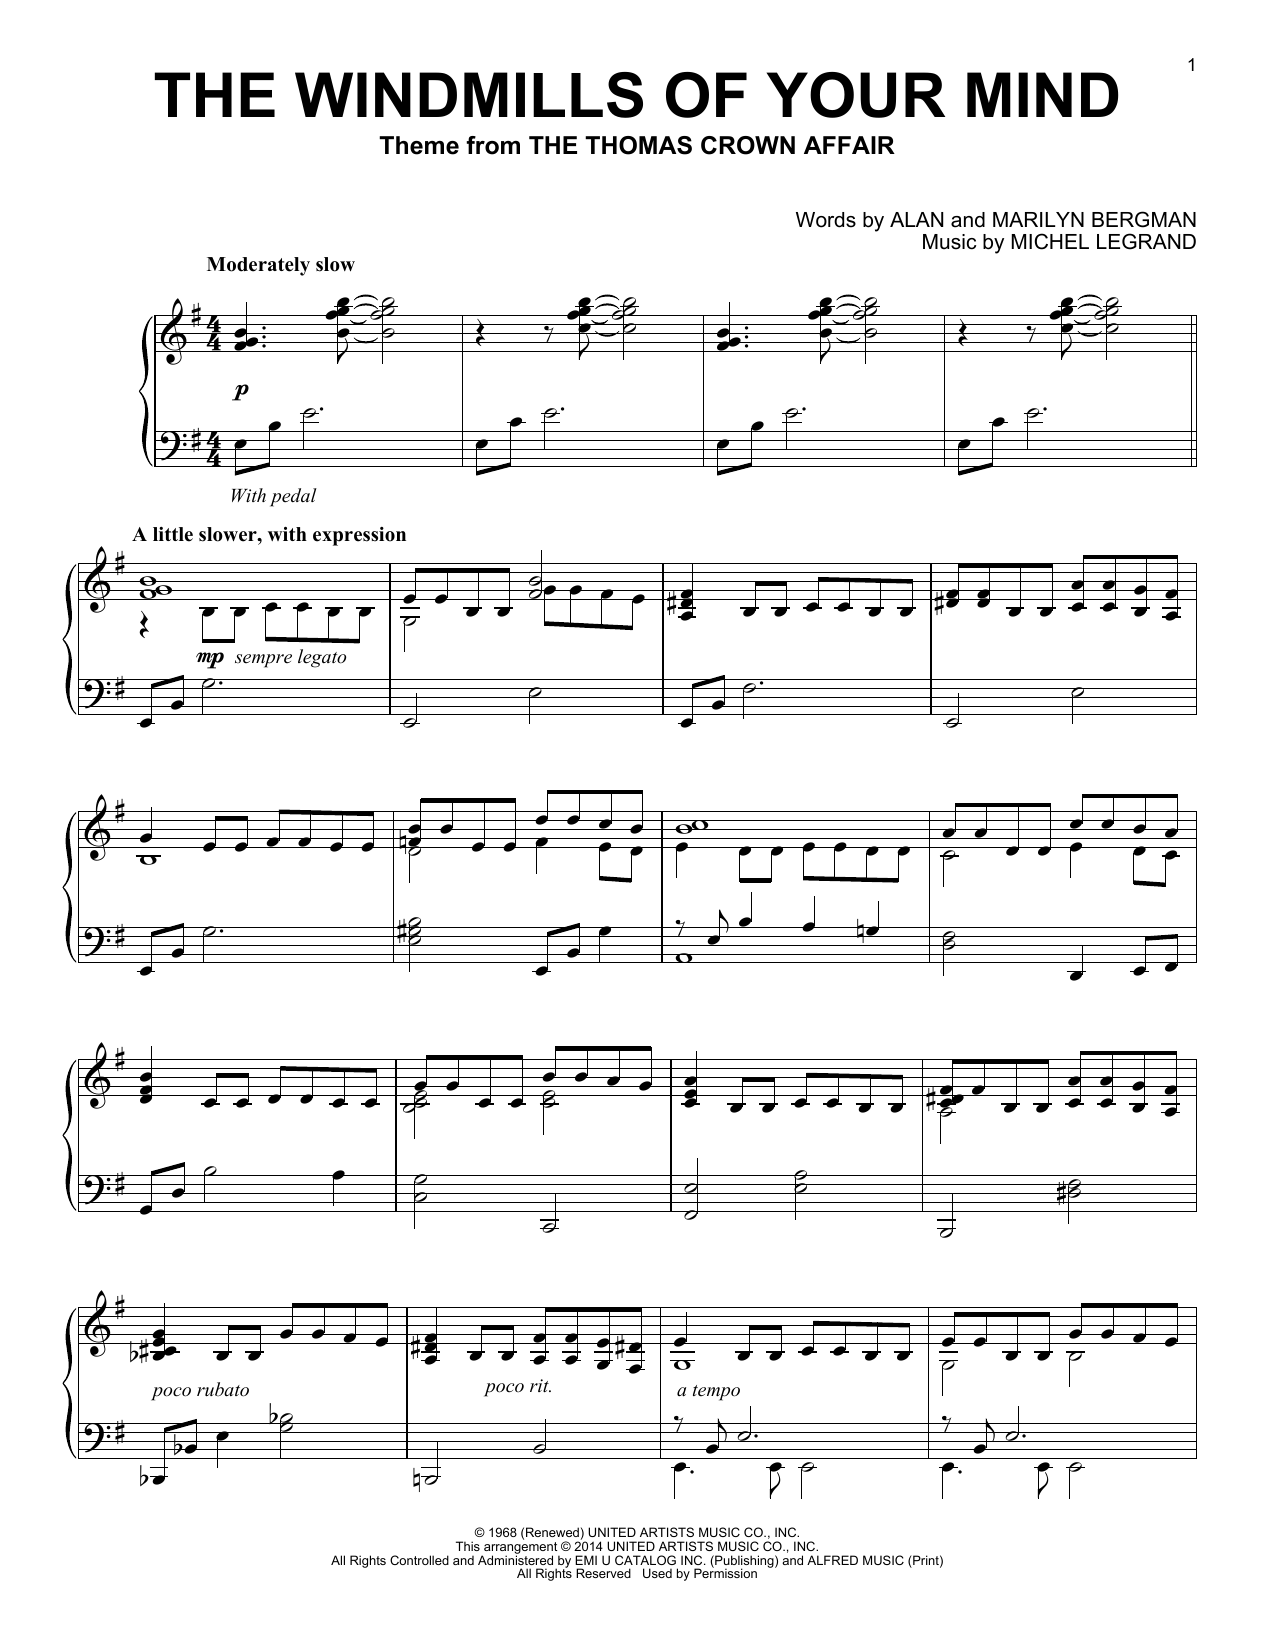 The Windmills Of Your Mind sheet music for piano solo by Marilyn Bergman